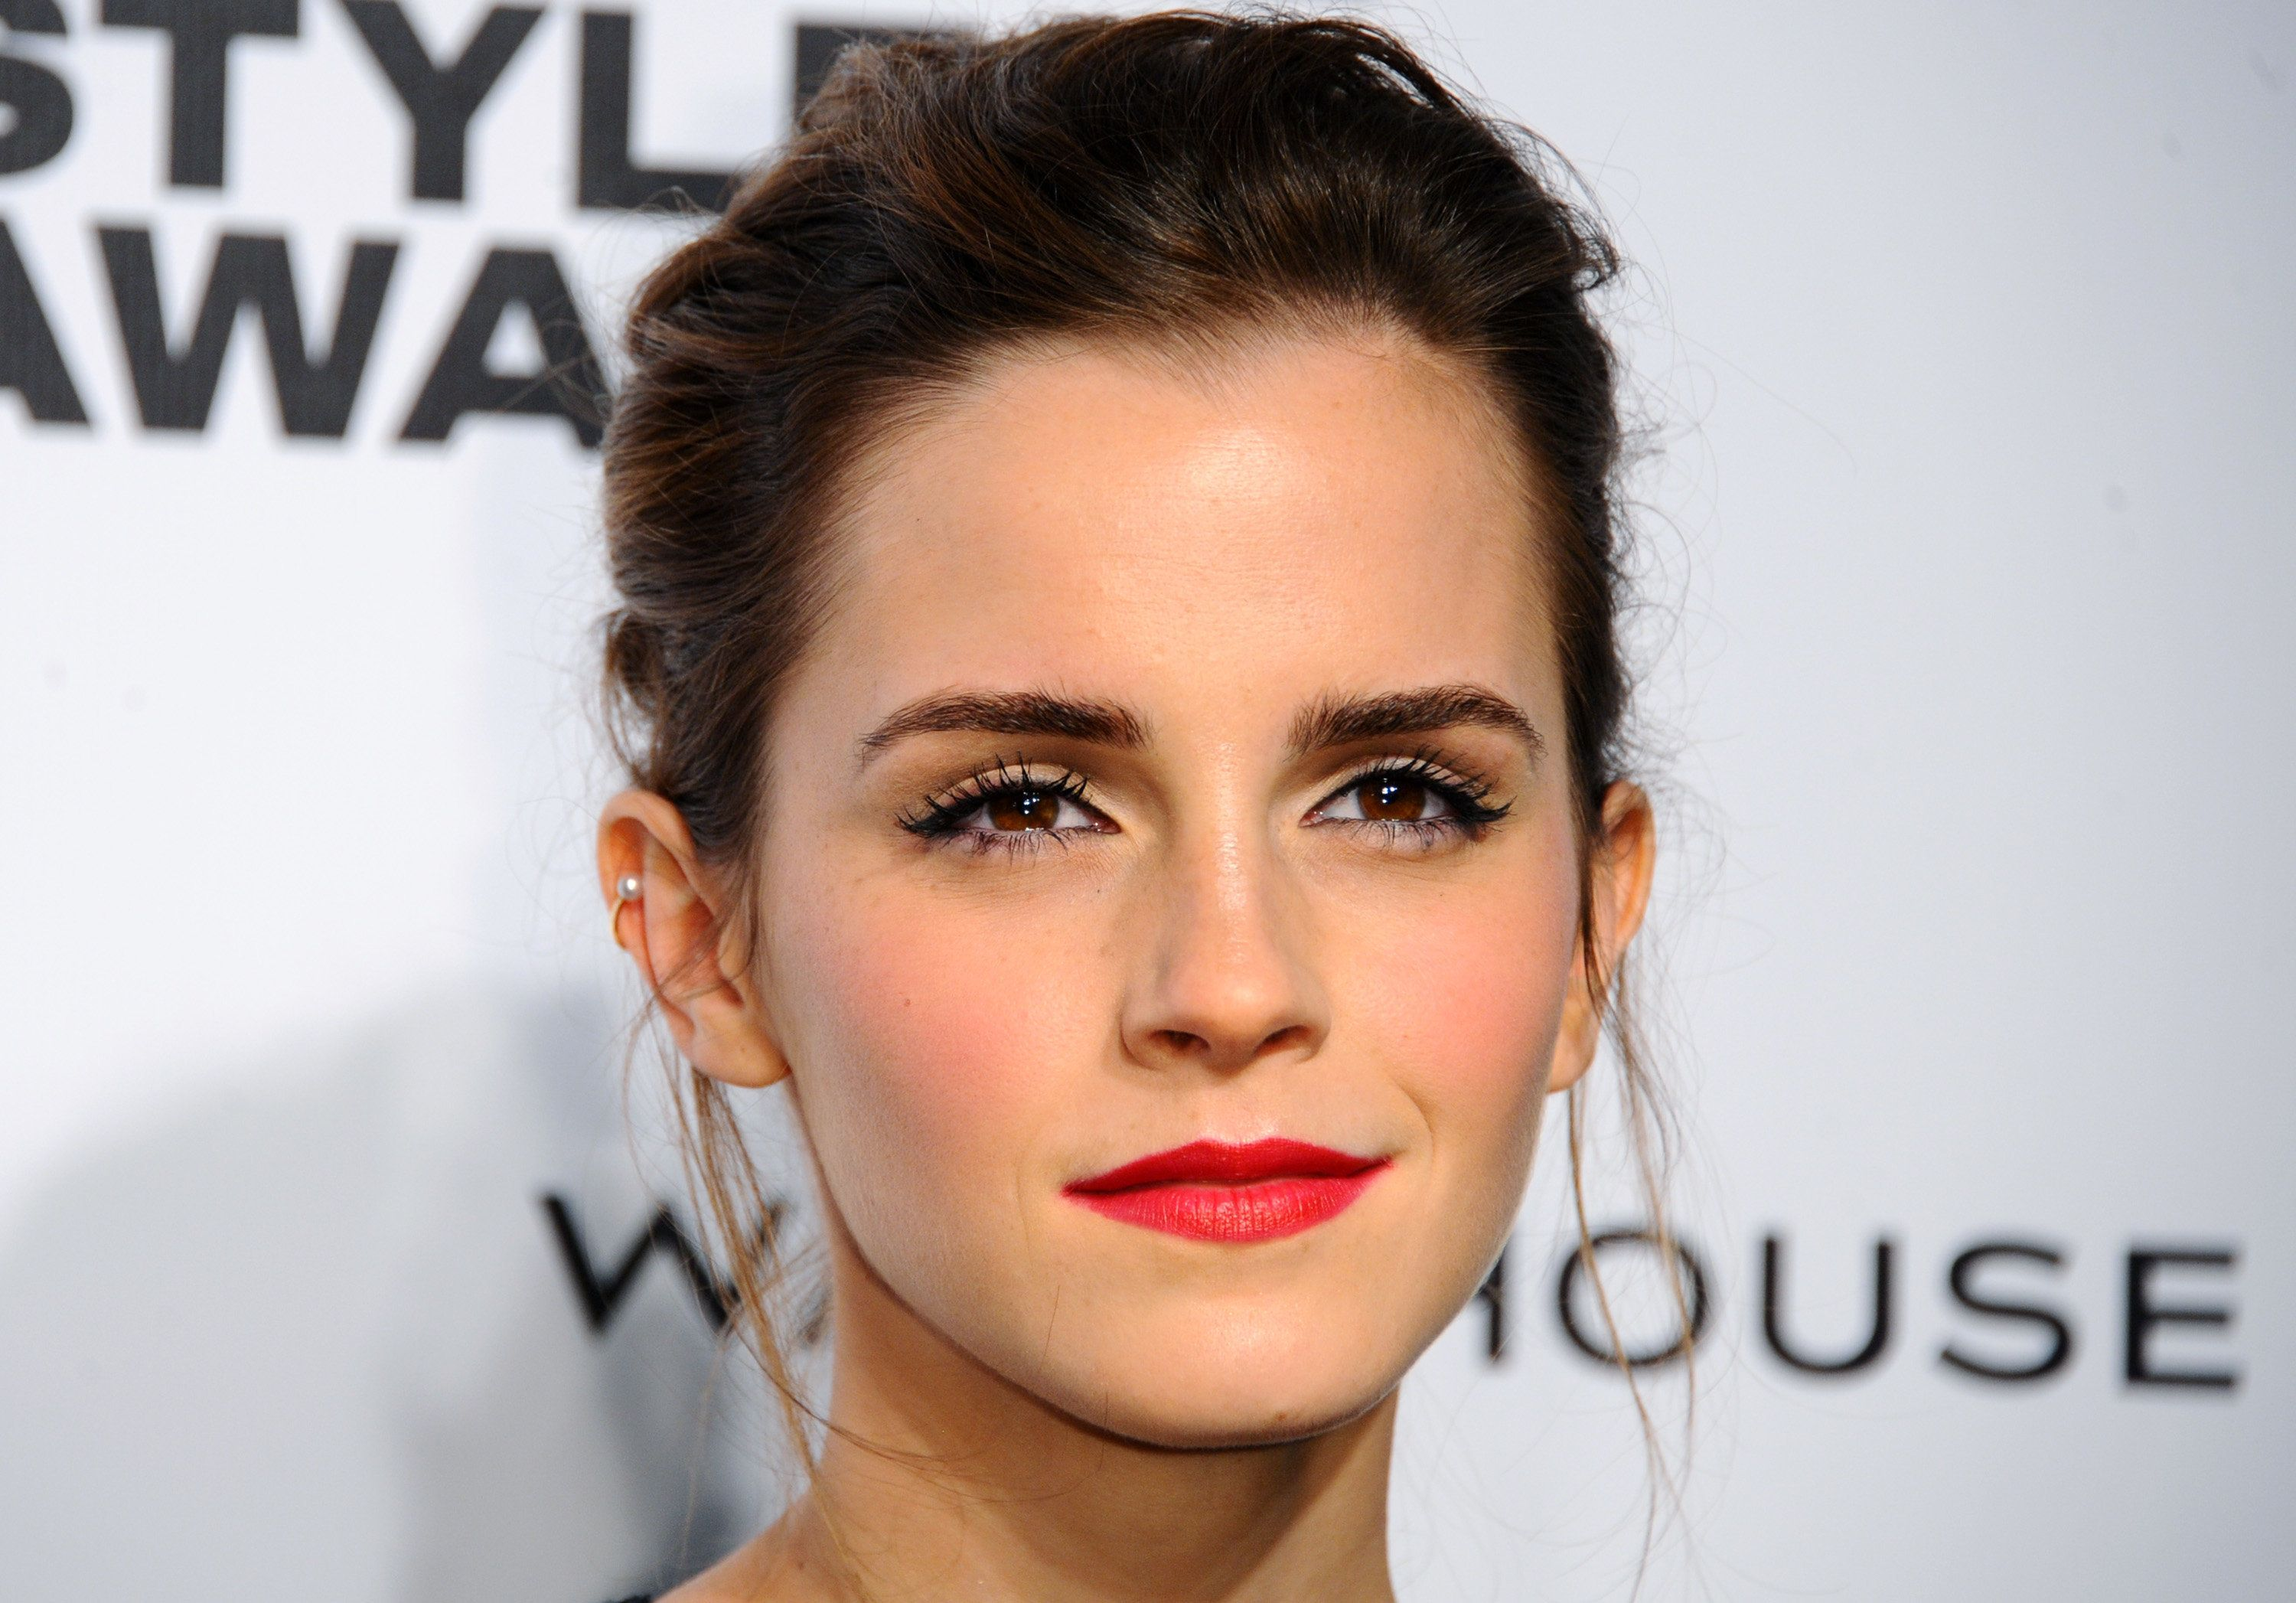 LONDON, ENGLAND - FEBRUARY 18:  Emma Watson attends the Elle Style Awards 2014 at one Embankment on February 18, 2014 in London, England.  (Photo by Anthony Harvey/Getty Images)